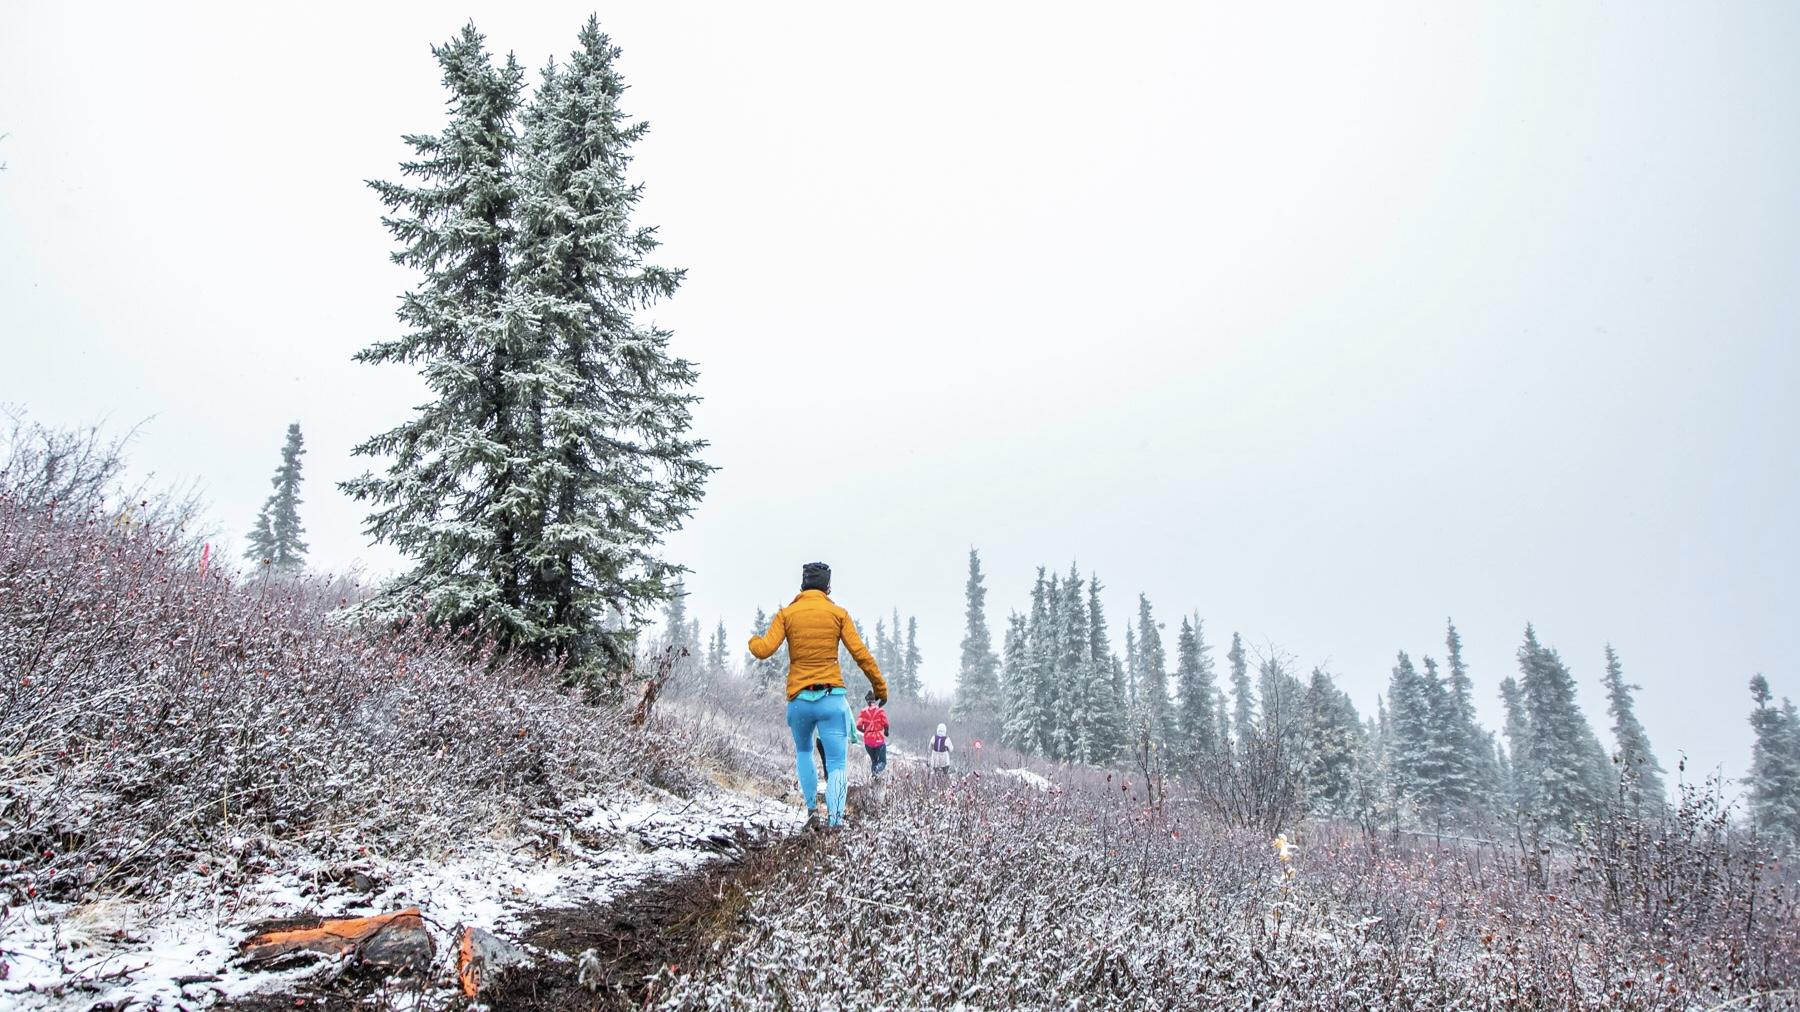 Conditions on Ester Dome during the 2019 Equinox Marathon